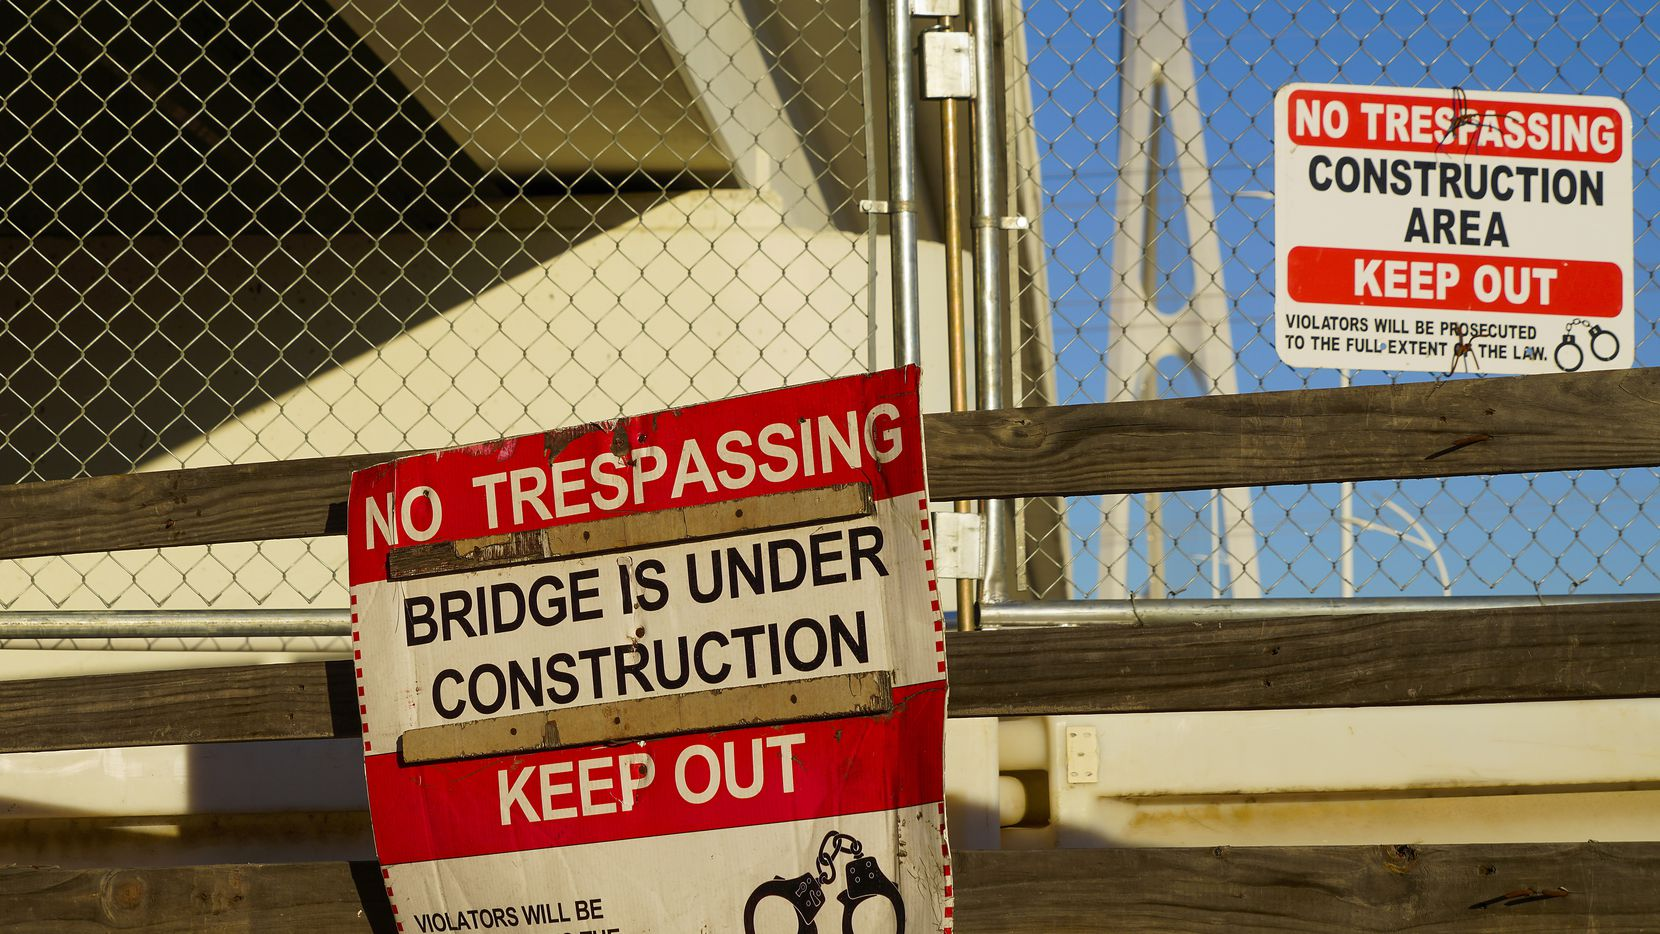 A barricade posted at an entrance blocks the pedestrian bridges on the hike and bike portion of the Margaret McDermott Bridge over the Trinity River in downtown Dallas on Monday, Jan. 4, 2021. Issues related to the cable anchorage system have been at the center of a long-running multi-agency dispute over the pedestrian portion of the $115 million Interstate 30 bridge.